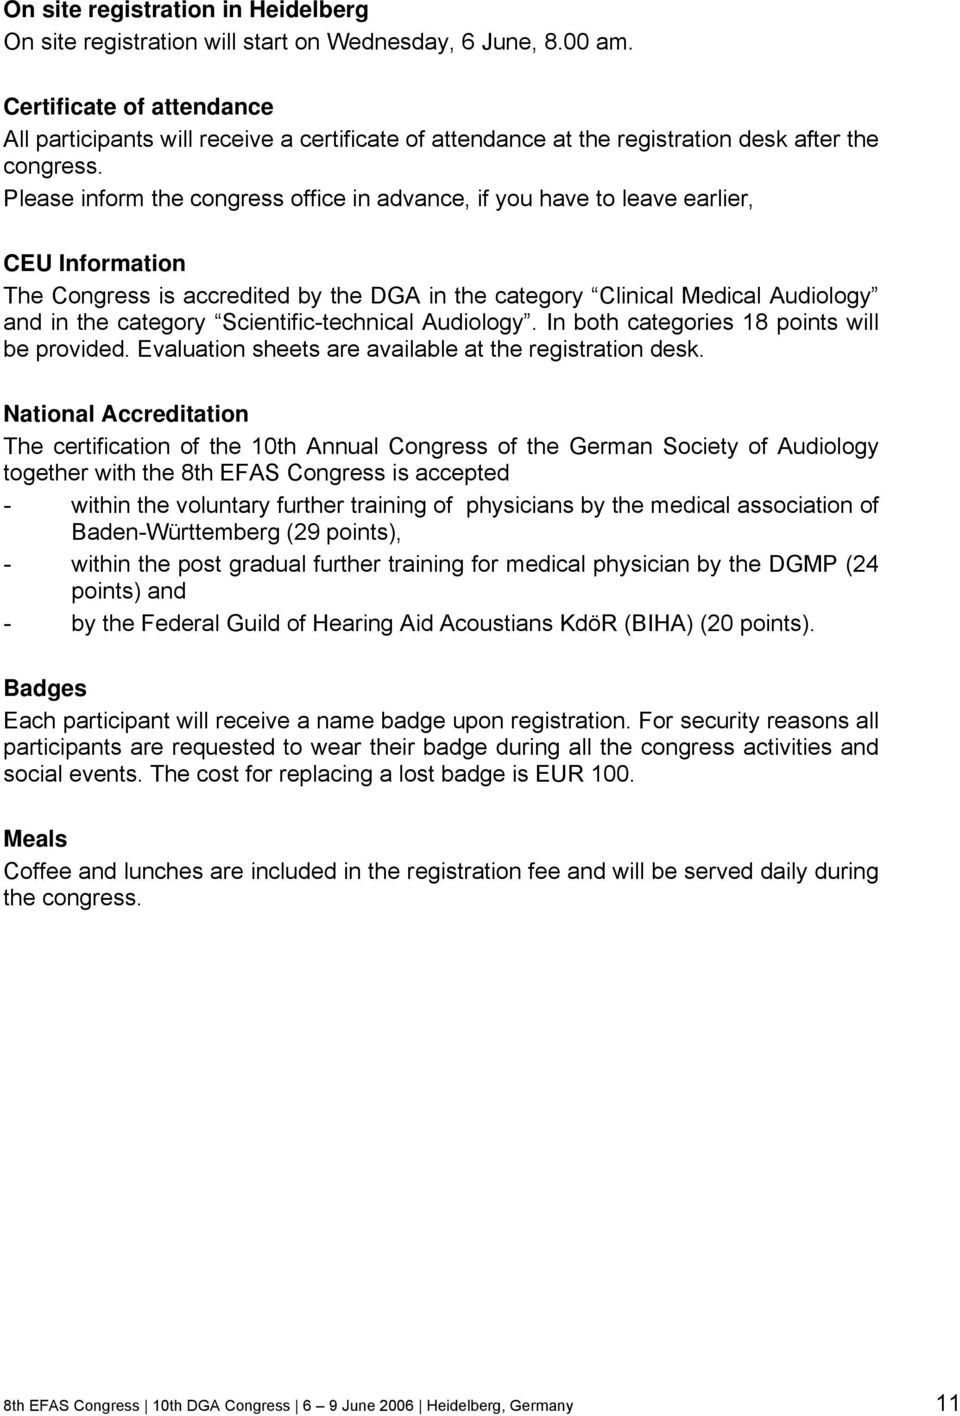 Please inform the congress office in advance, if you have to leave earlier, CEU Information The Congress is accredited by the DGA in the category Clinical Medical Audiology and in the category